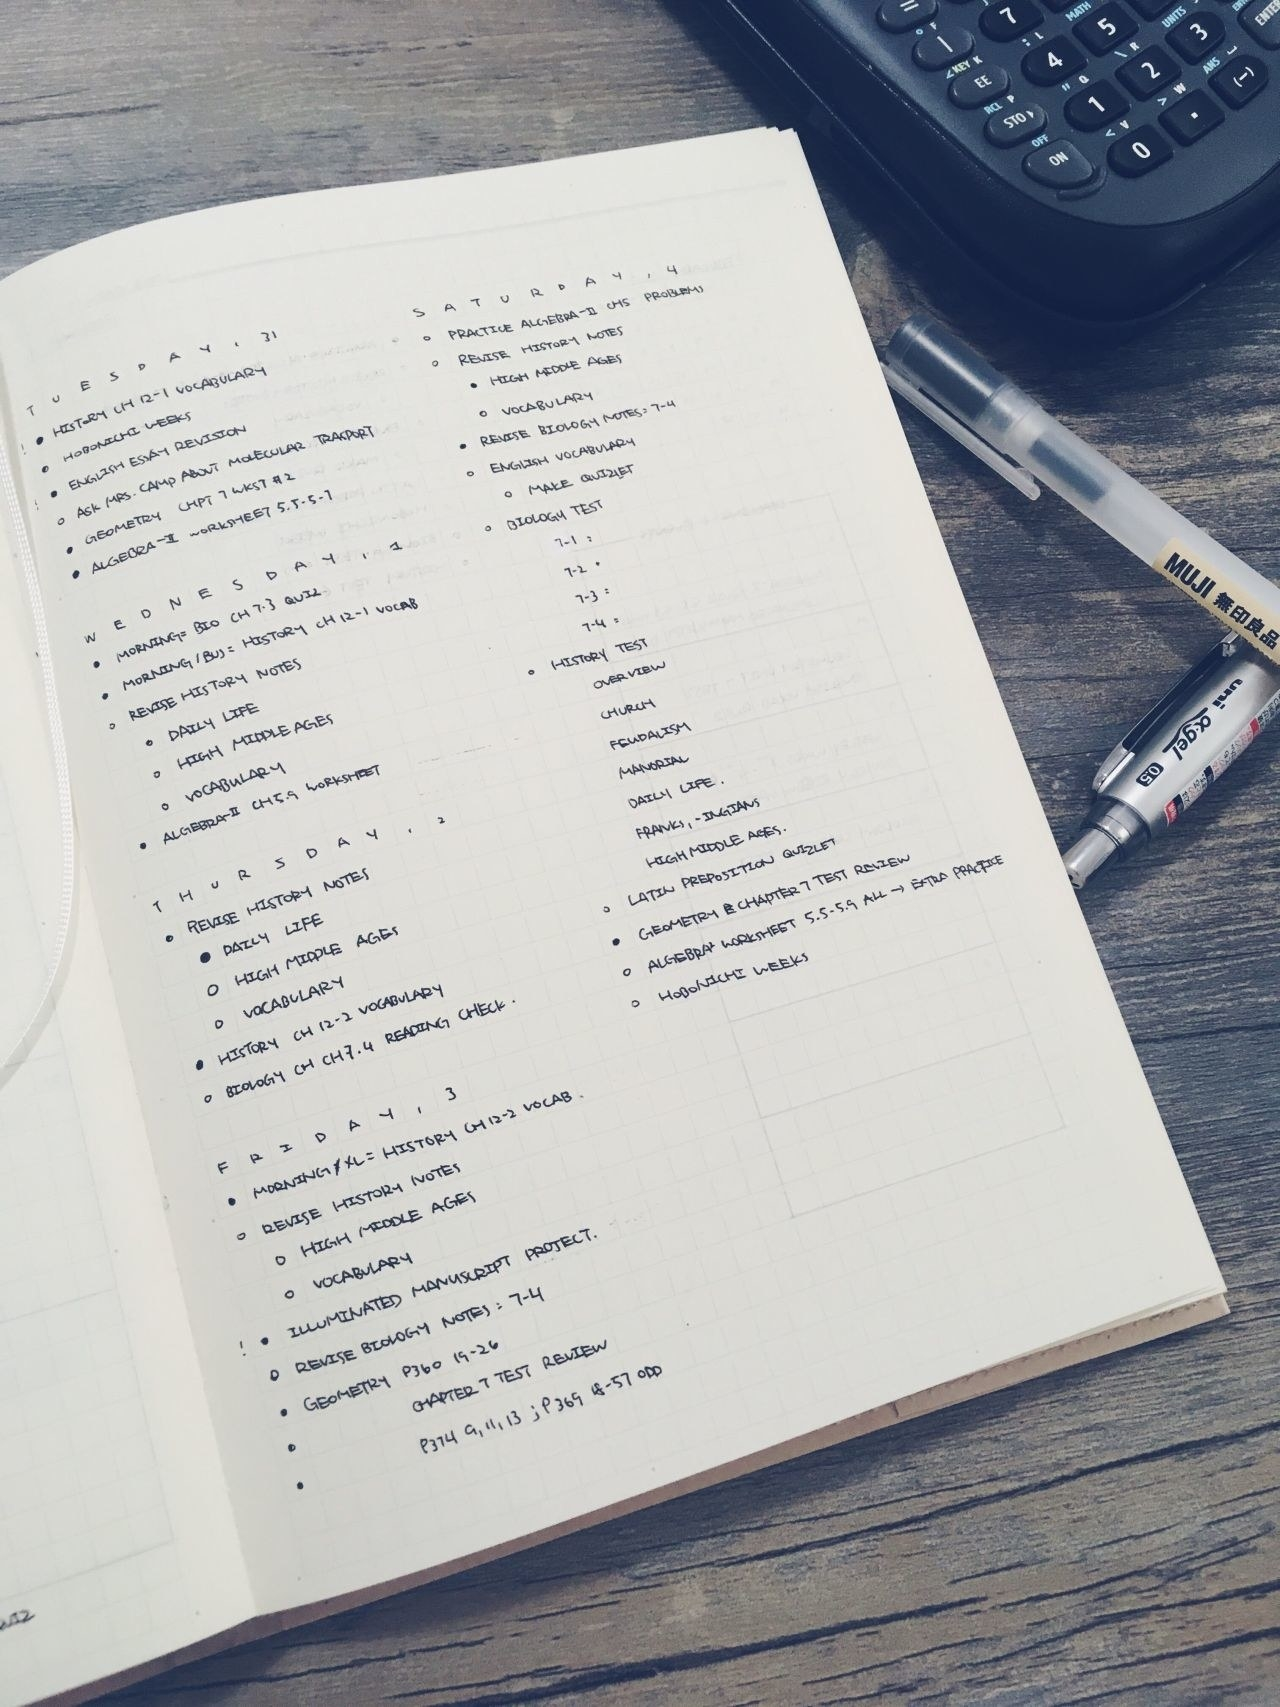 21 Minimalist Bullet Journal Spreads That Are So Pretty, You Might Sigh Out Loud